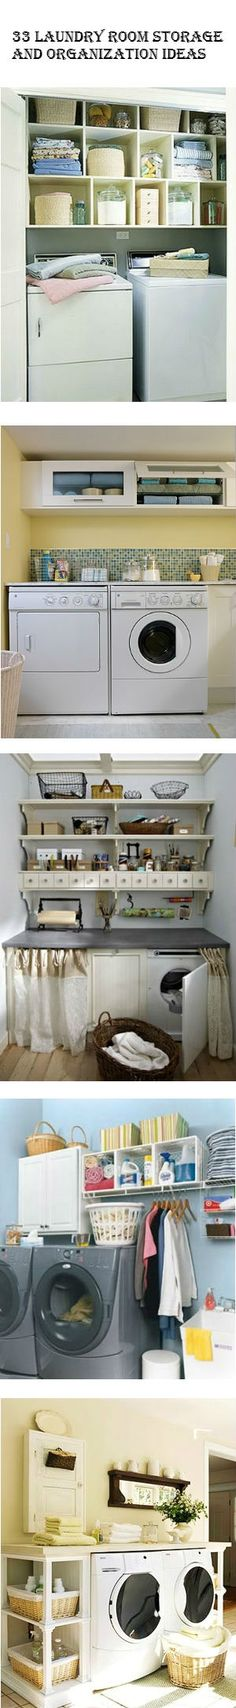 33 Laundry Room Storage and Organization Ideas | DIY Comfy Home by DIYNCraftz